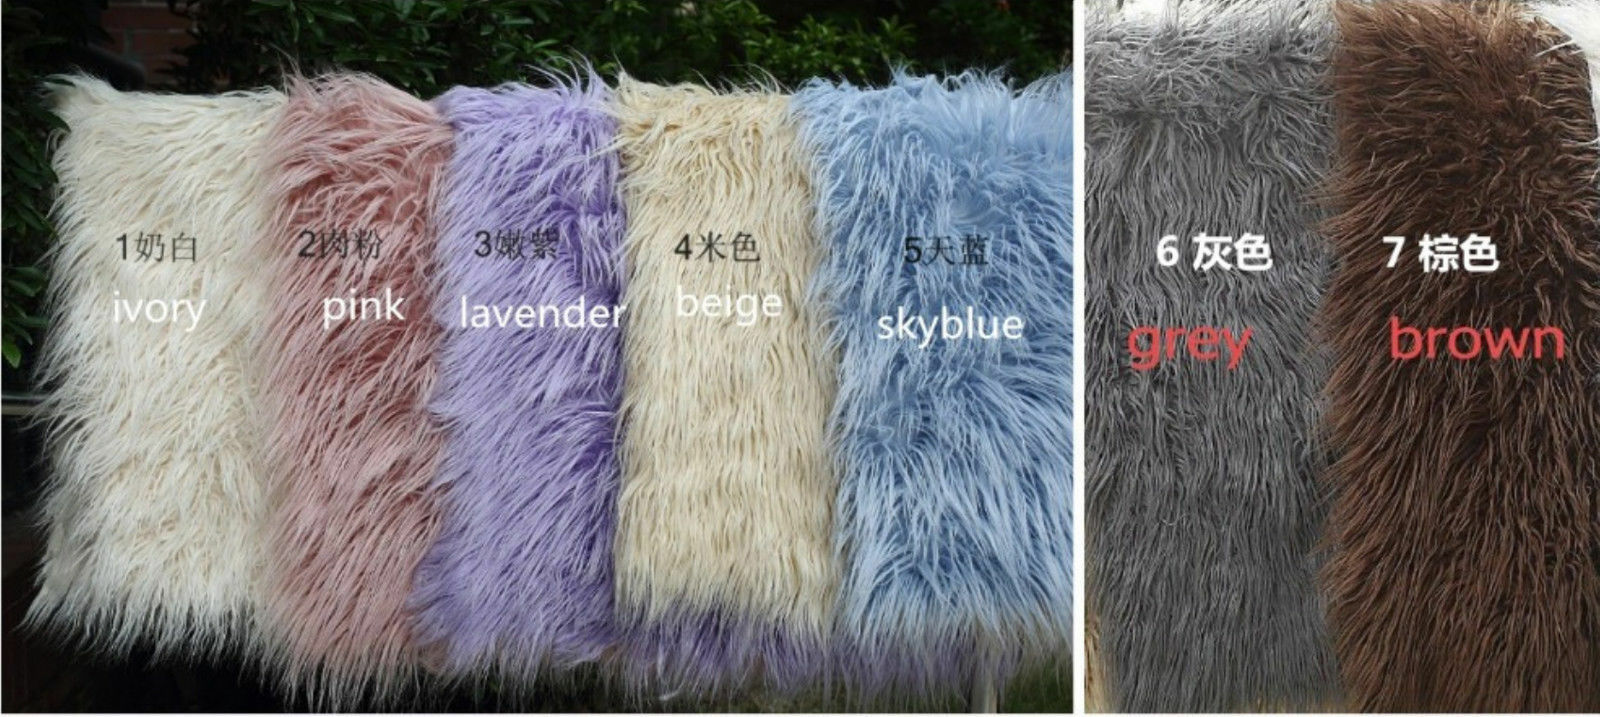 New 150100cm Faux Fur Quality Soft Blanket Newborn Baby Photography Props